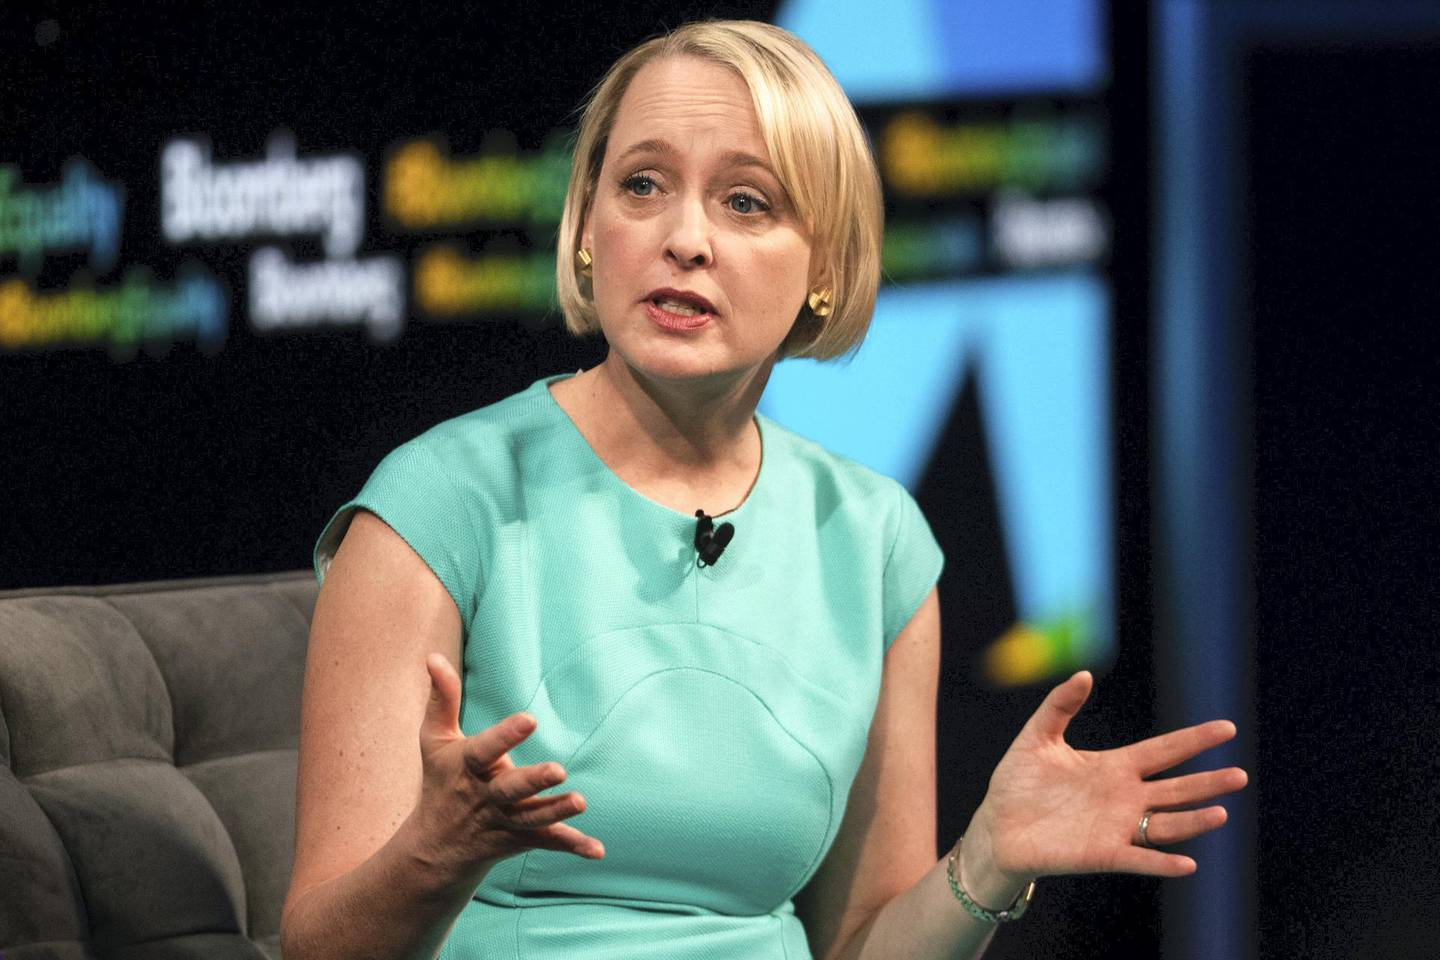 Julie Sweet, chief executive officer of North America for Accenture PLC, speaks during the Bloomberg Business of Equality conference in New York, U.S., on Tuesday, May 8, 2018. The conference brings together business, academic and political leaders as well as nonprofits and activists to discuss the future of equality, how we get there and what is at stake for the economy and society at-large. Photographer: Mark Kauzlarich/Bloomberg via Getty Images